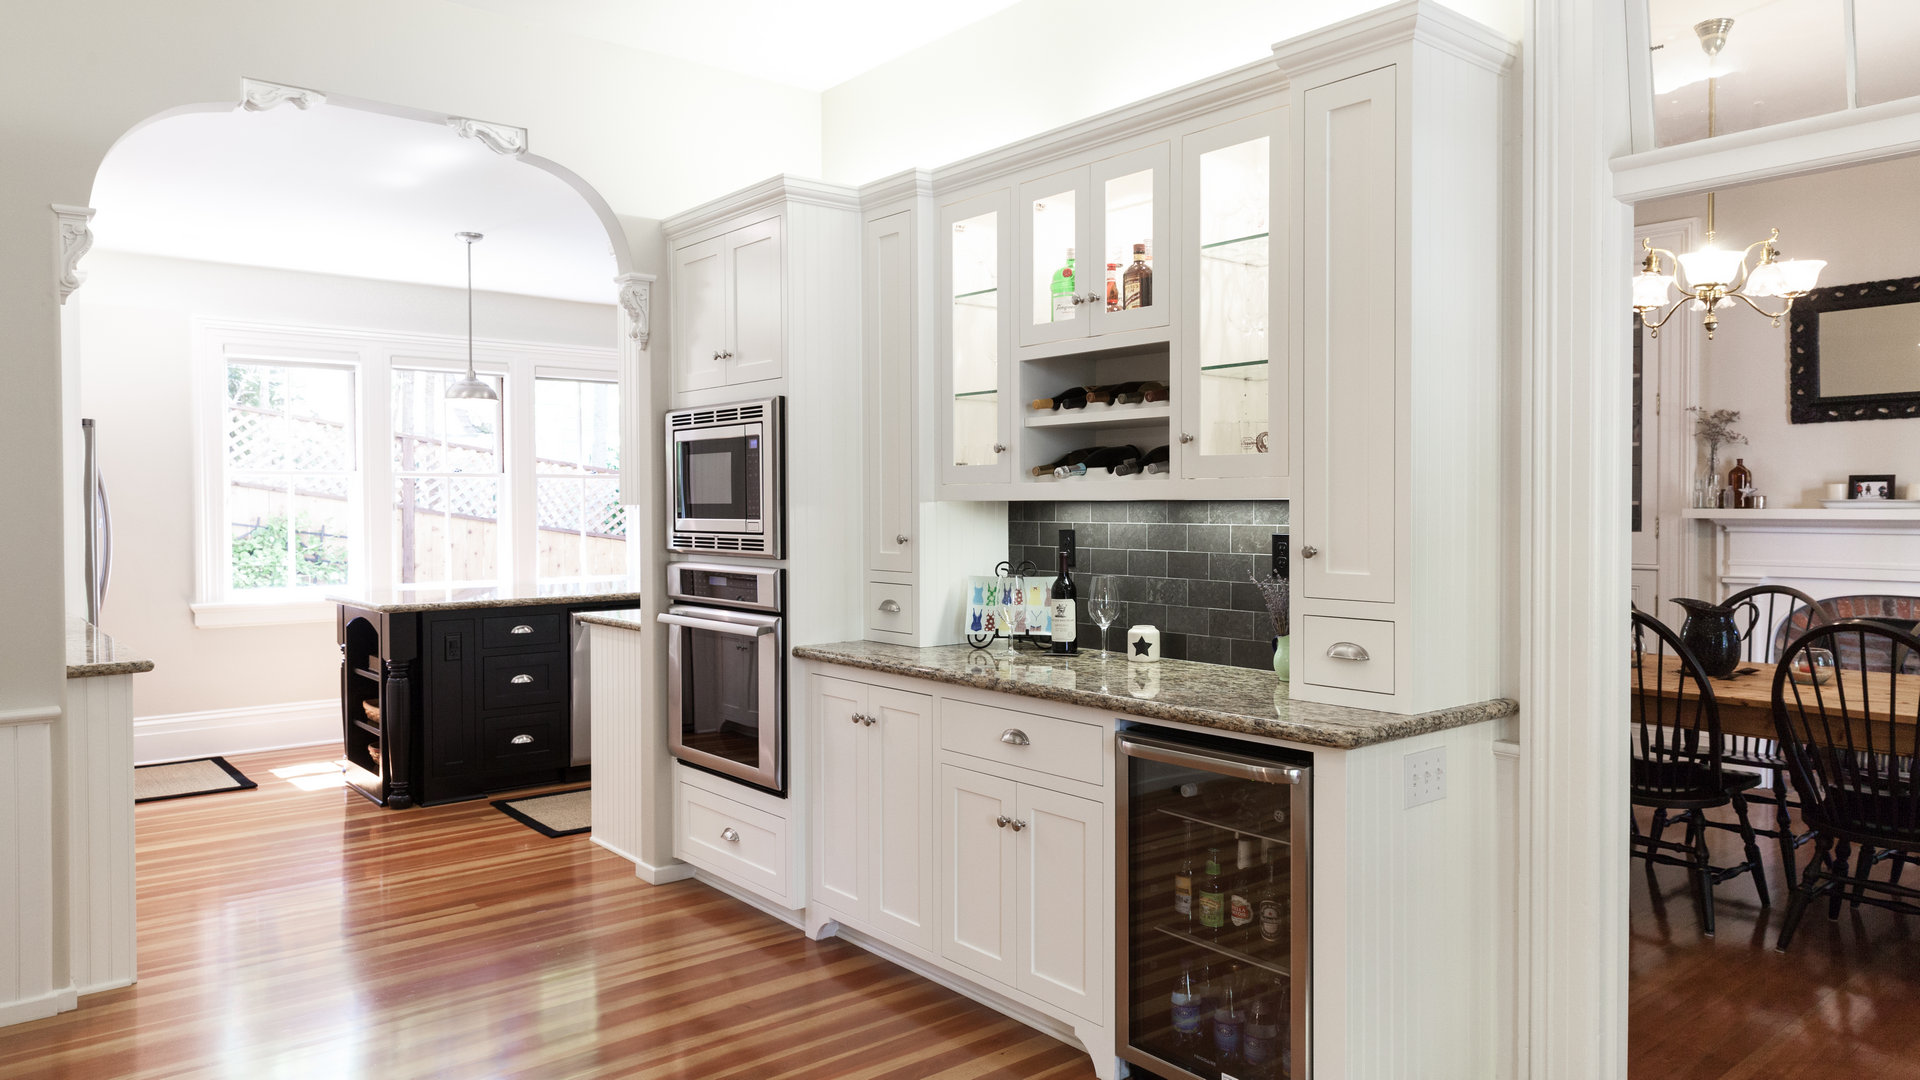 Park Avenue kitchen remodel